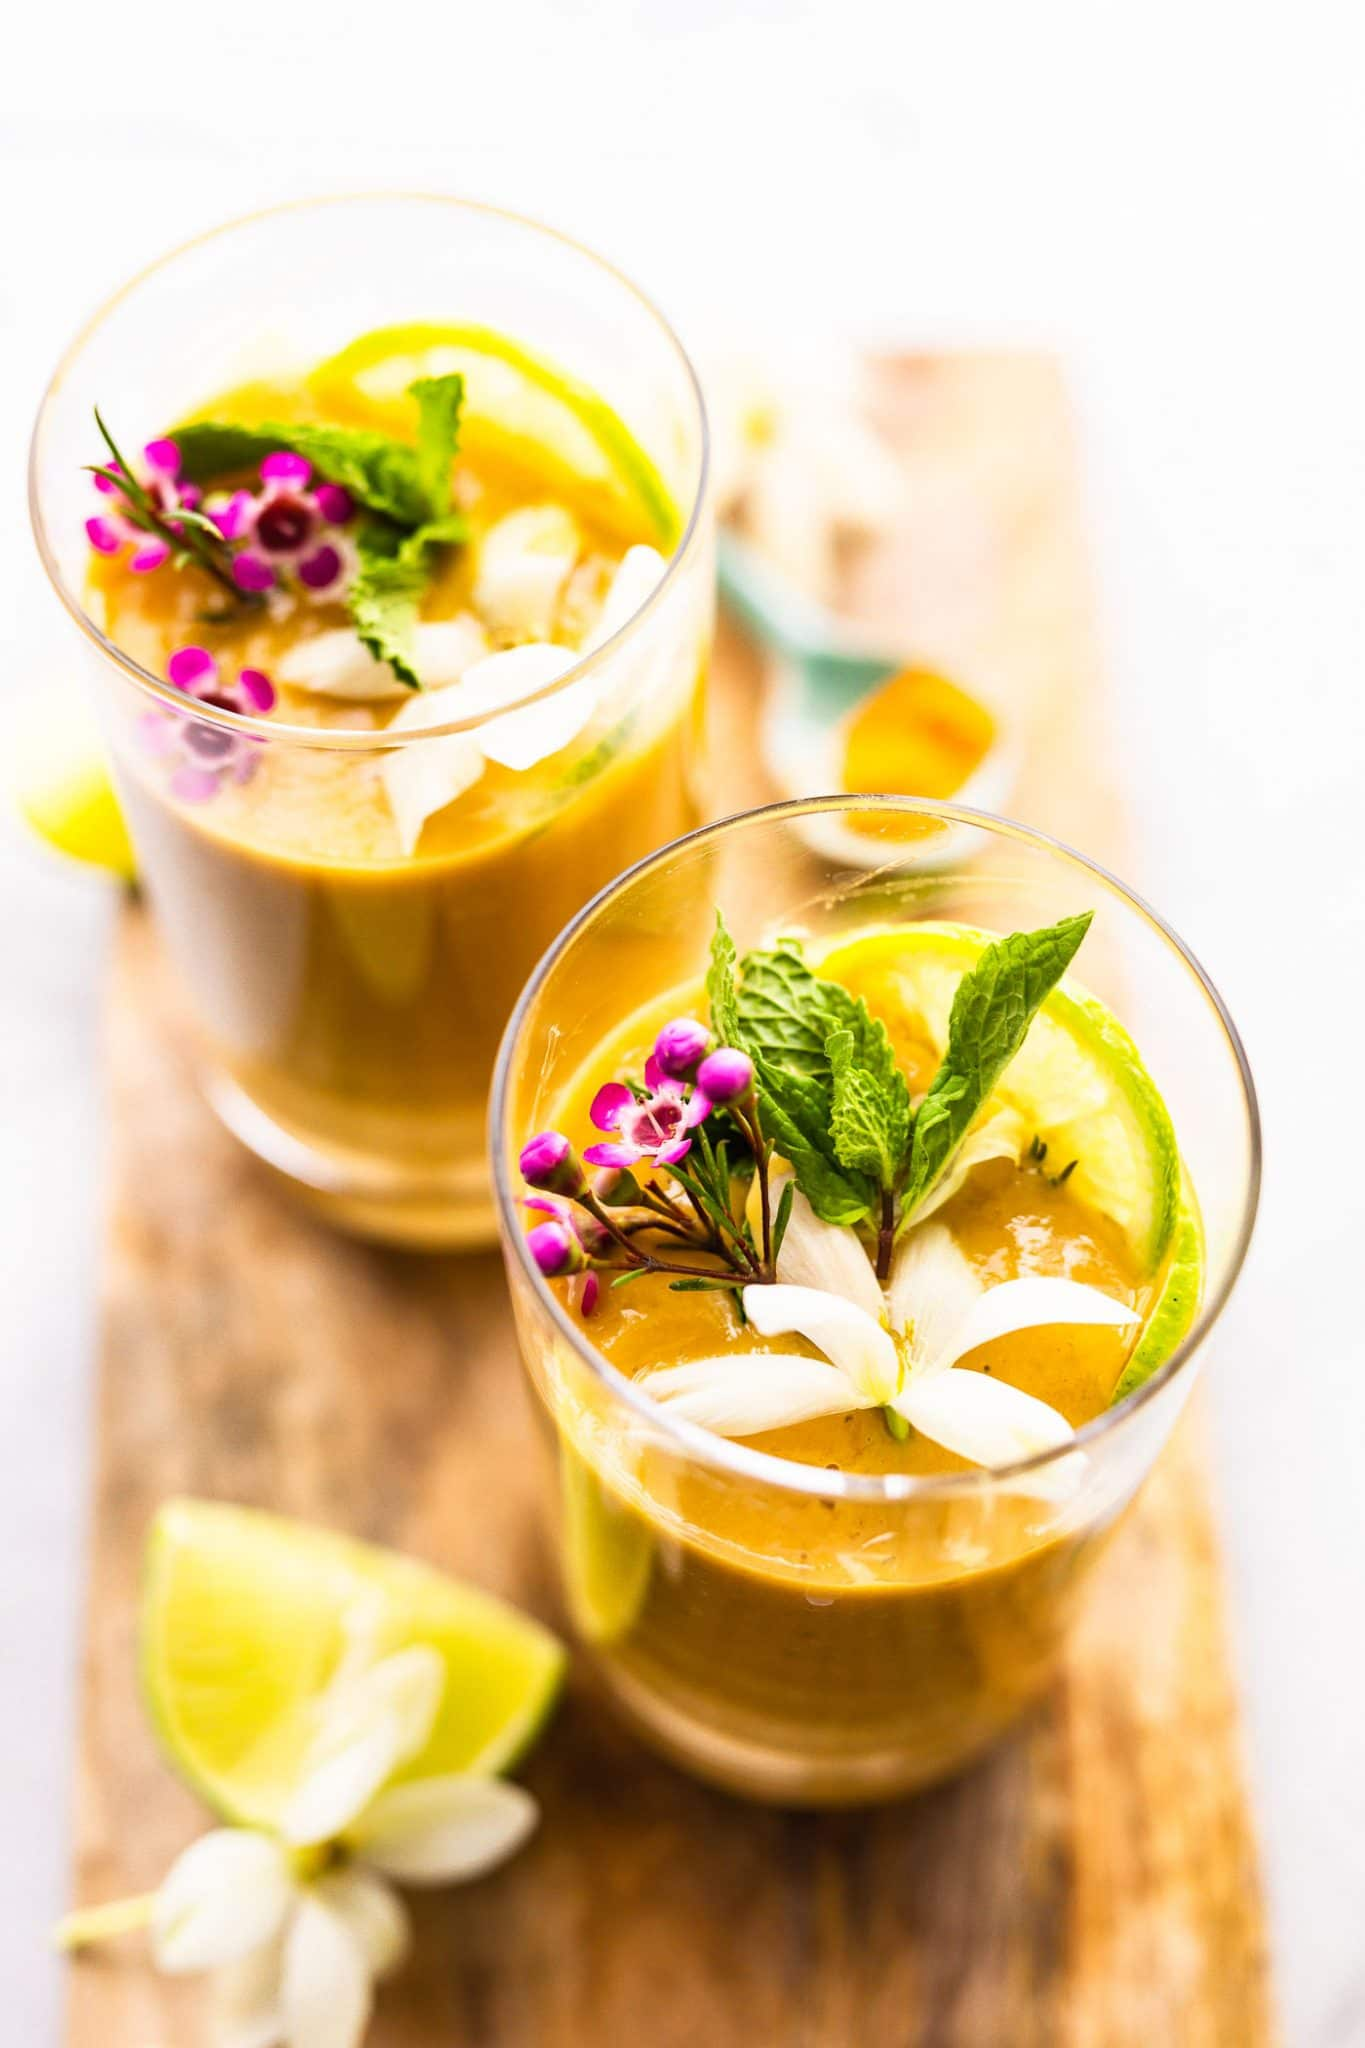 Overhead image of two turmeric smoothies on a serving platter, garnished with fresh flowers, limes, and mint.